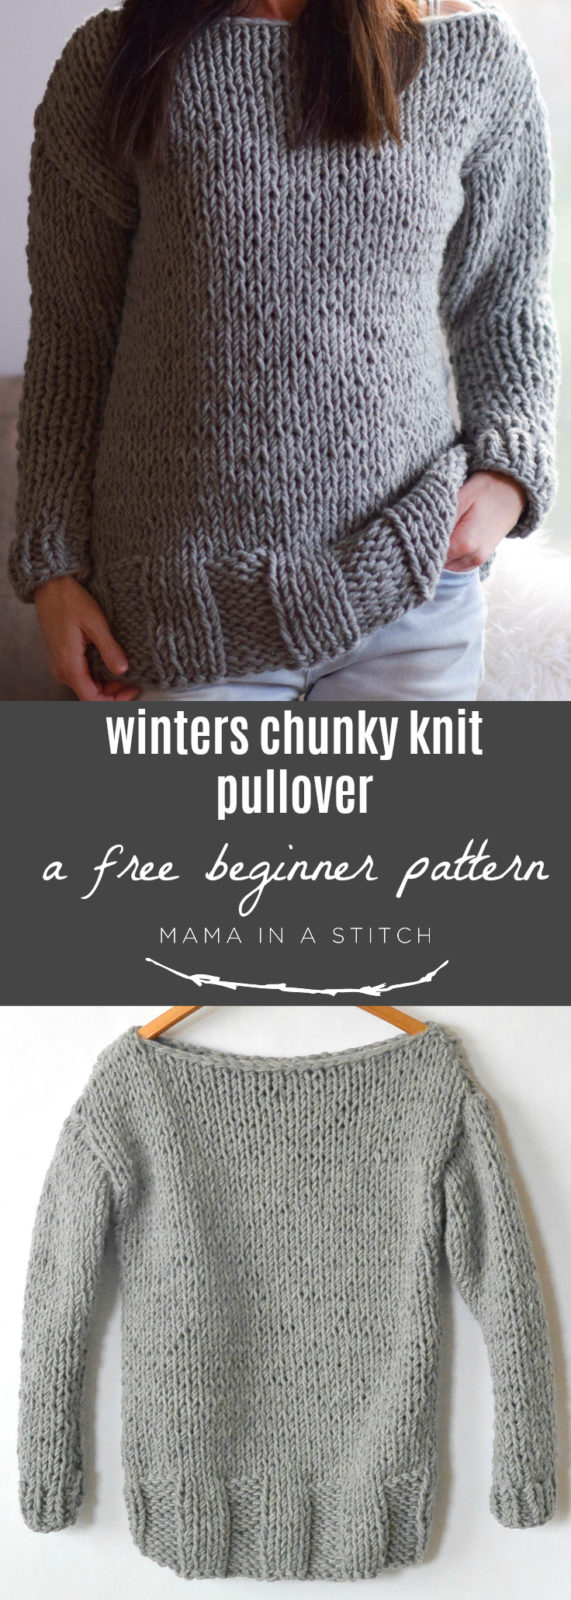 Knit Jumper Pattern Winters Chunky Easy Knit Pullover Pattern Mama In A Stitch